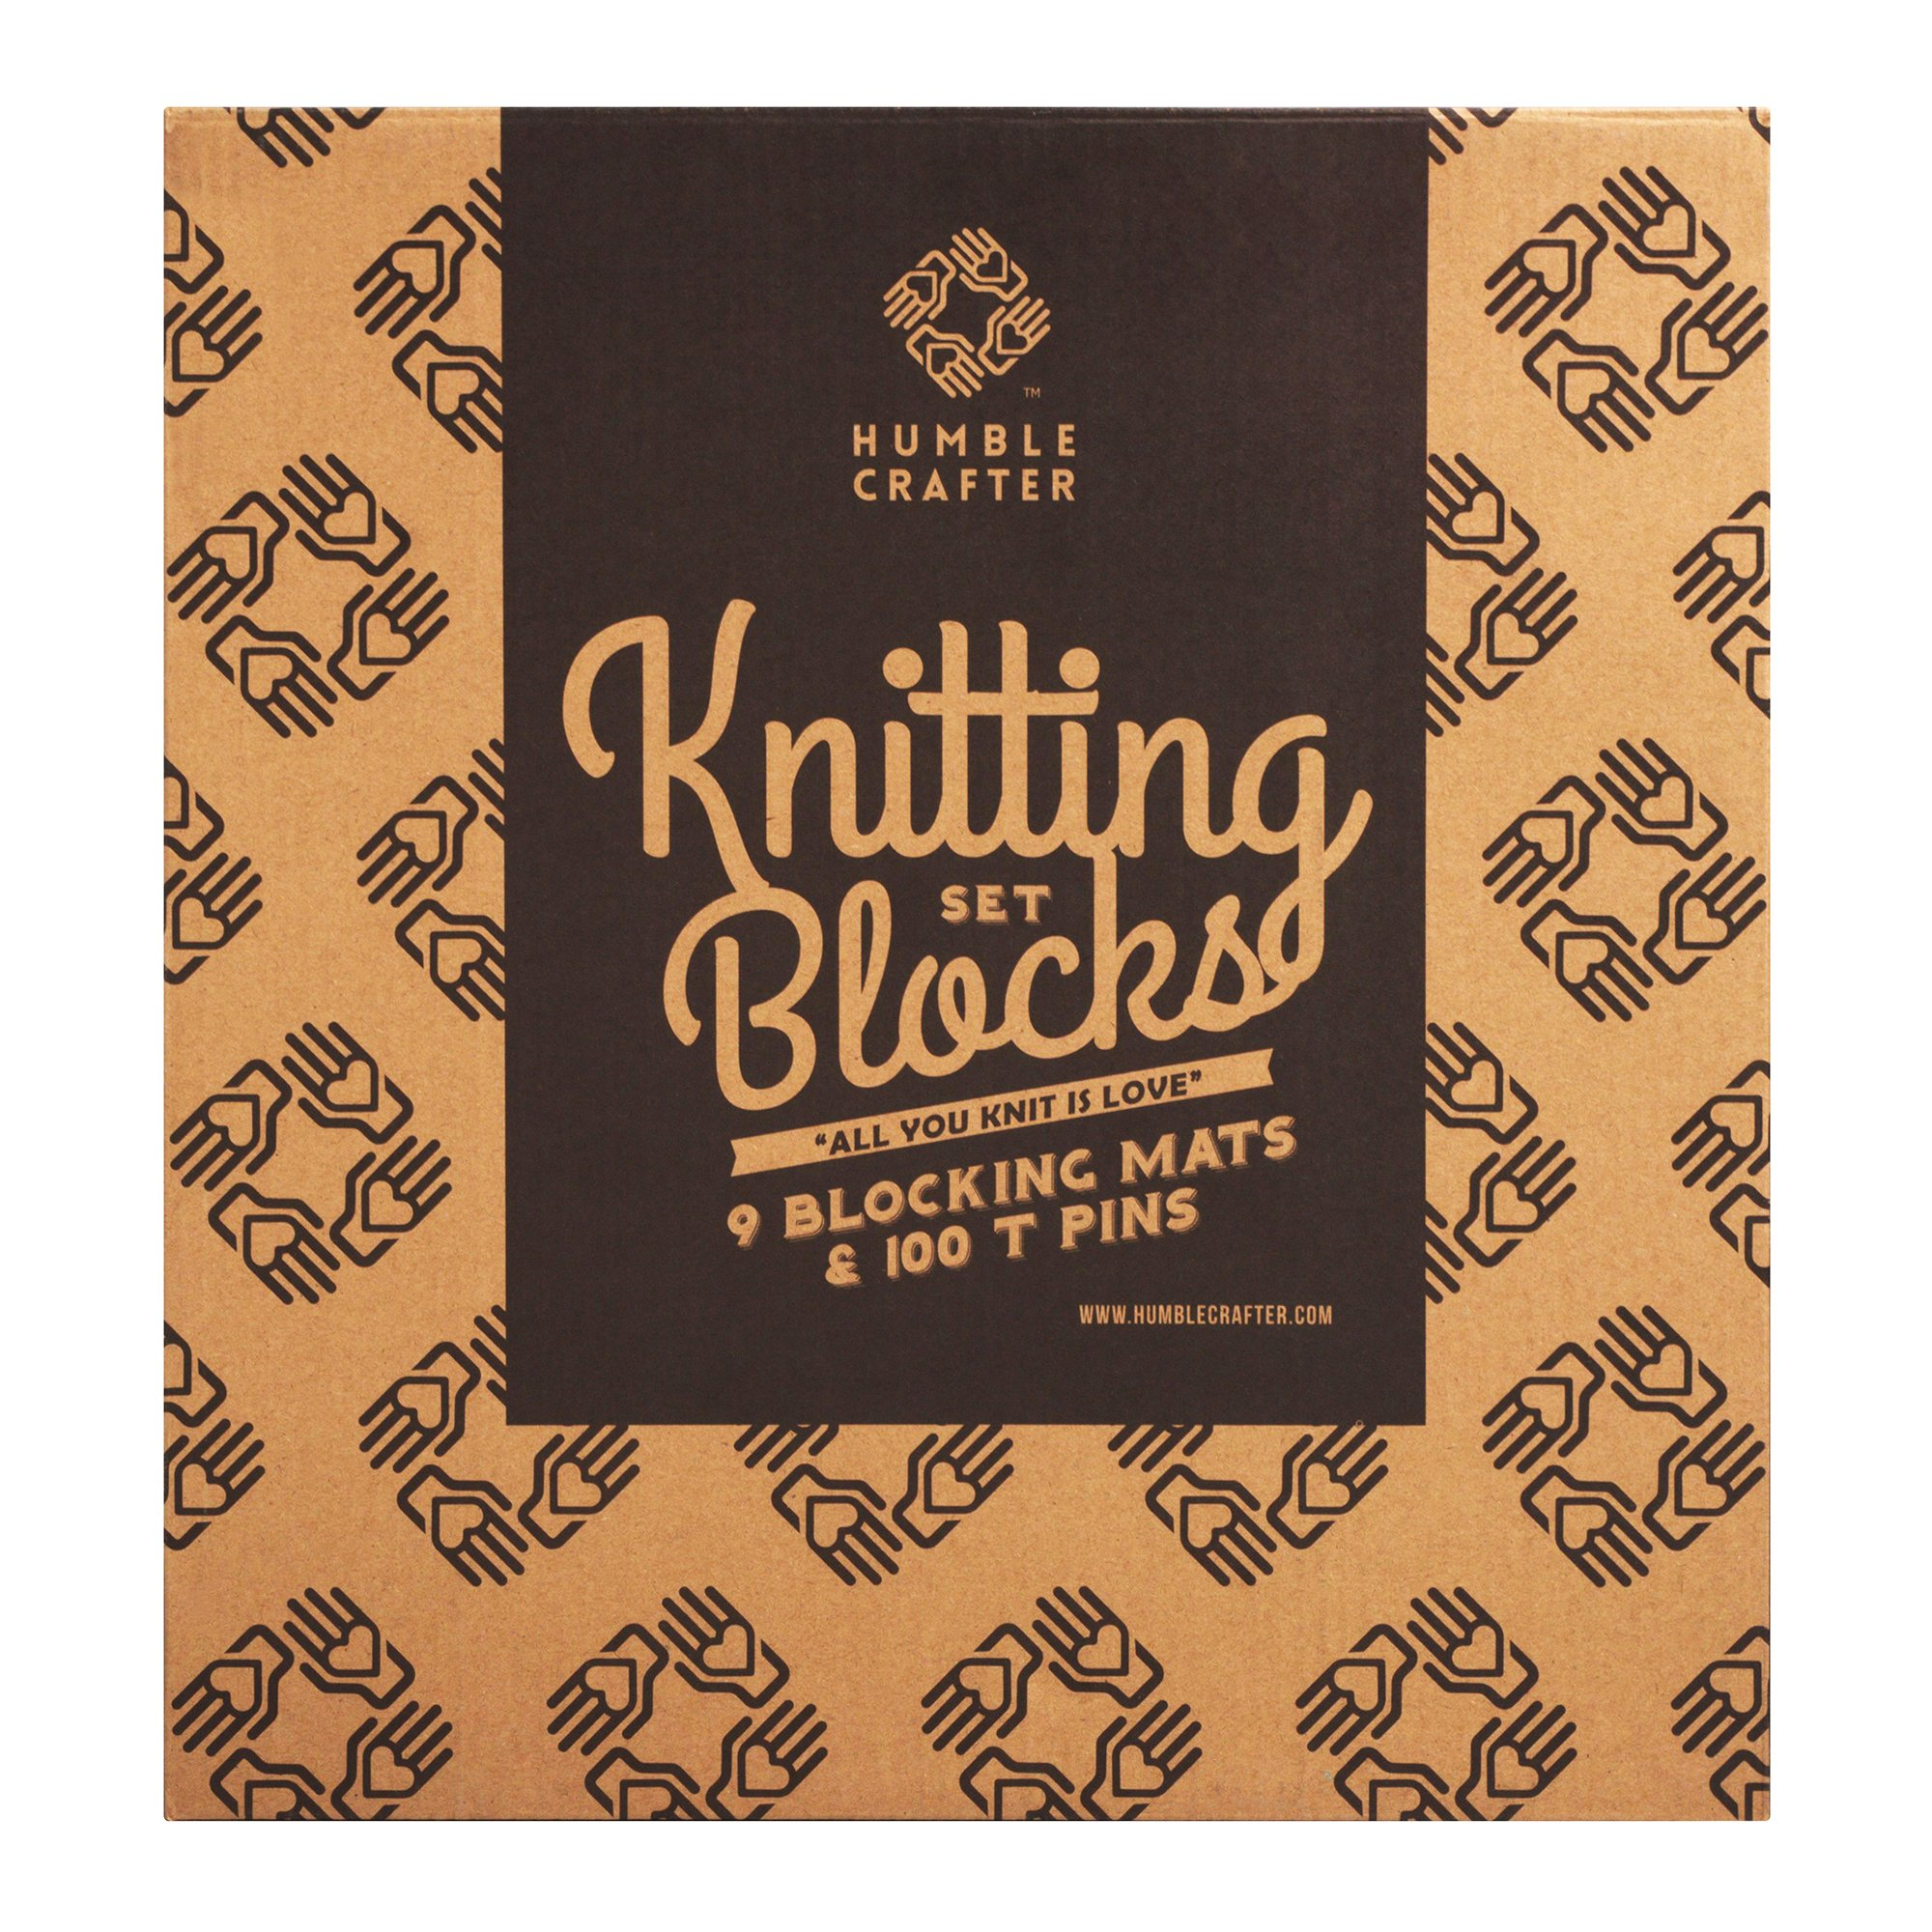 Blocking Mats for Knitting | Extra Thick - with Grids Guaranteed to Align - Includes 100 Stainless Steel T-Pins and 60-Inch Measure Tape... by Humble Crafter (Image #8)